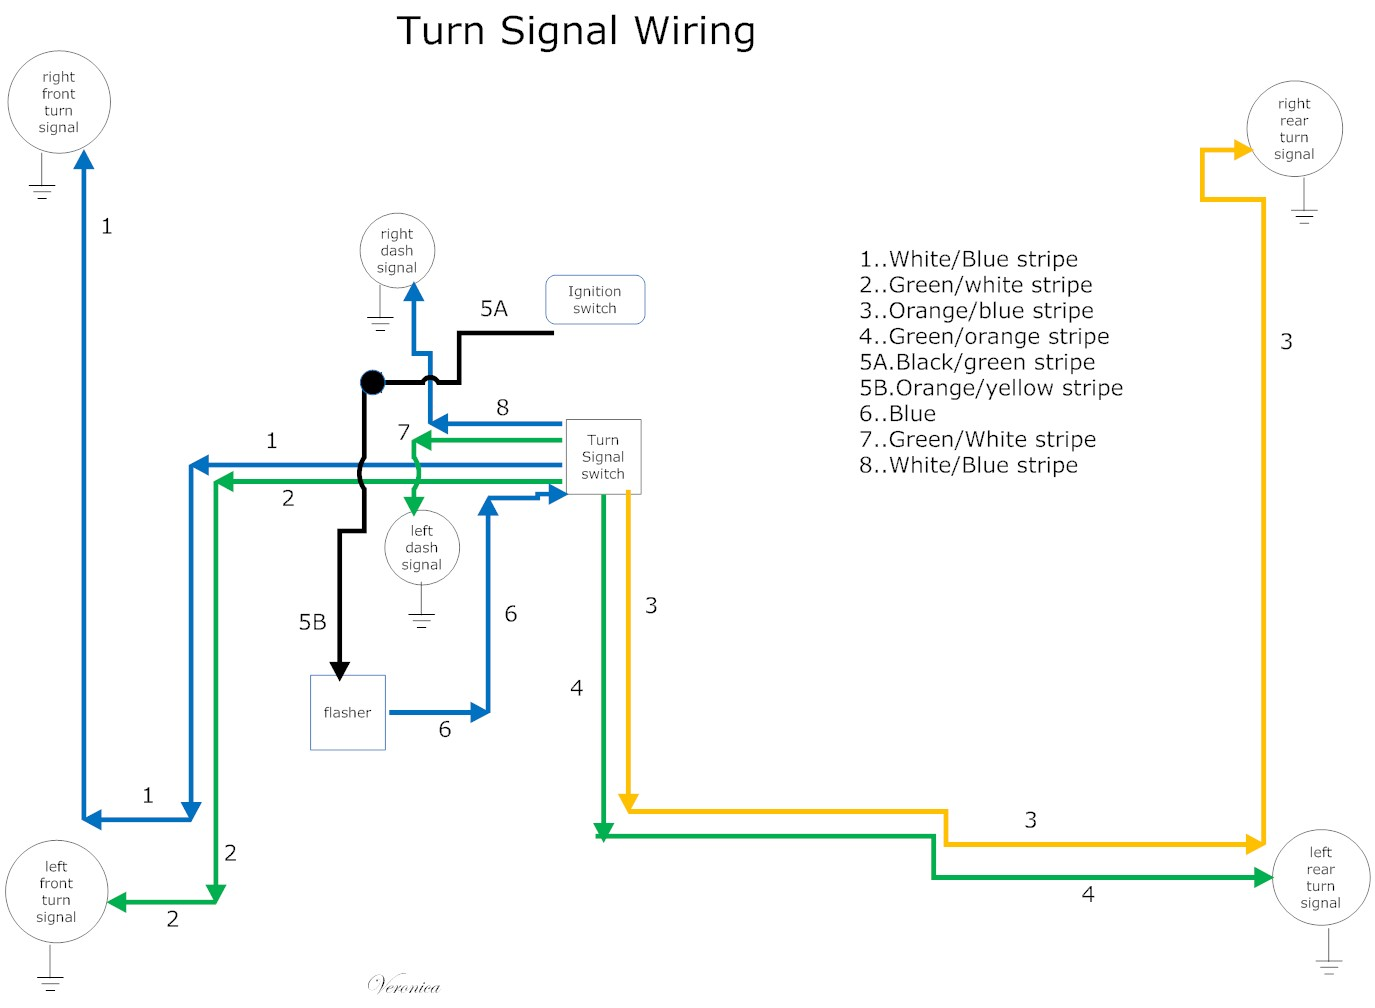 Combined Brake And Turn Signal Wiring Diagram from 4.bp.blogspot.com